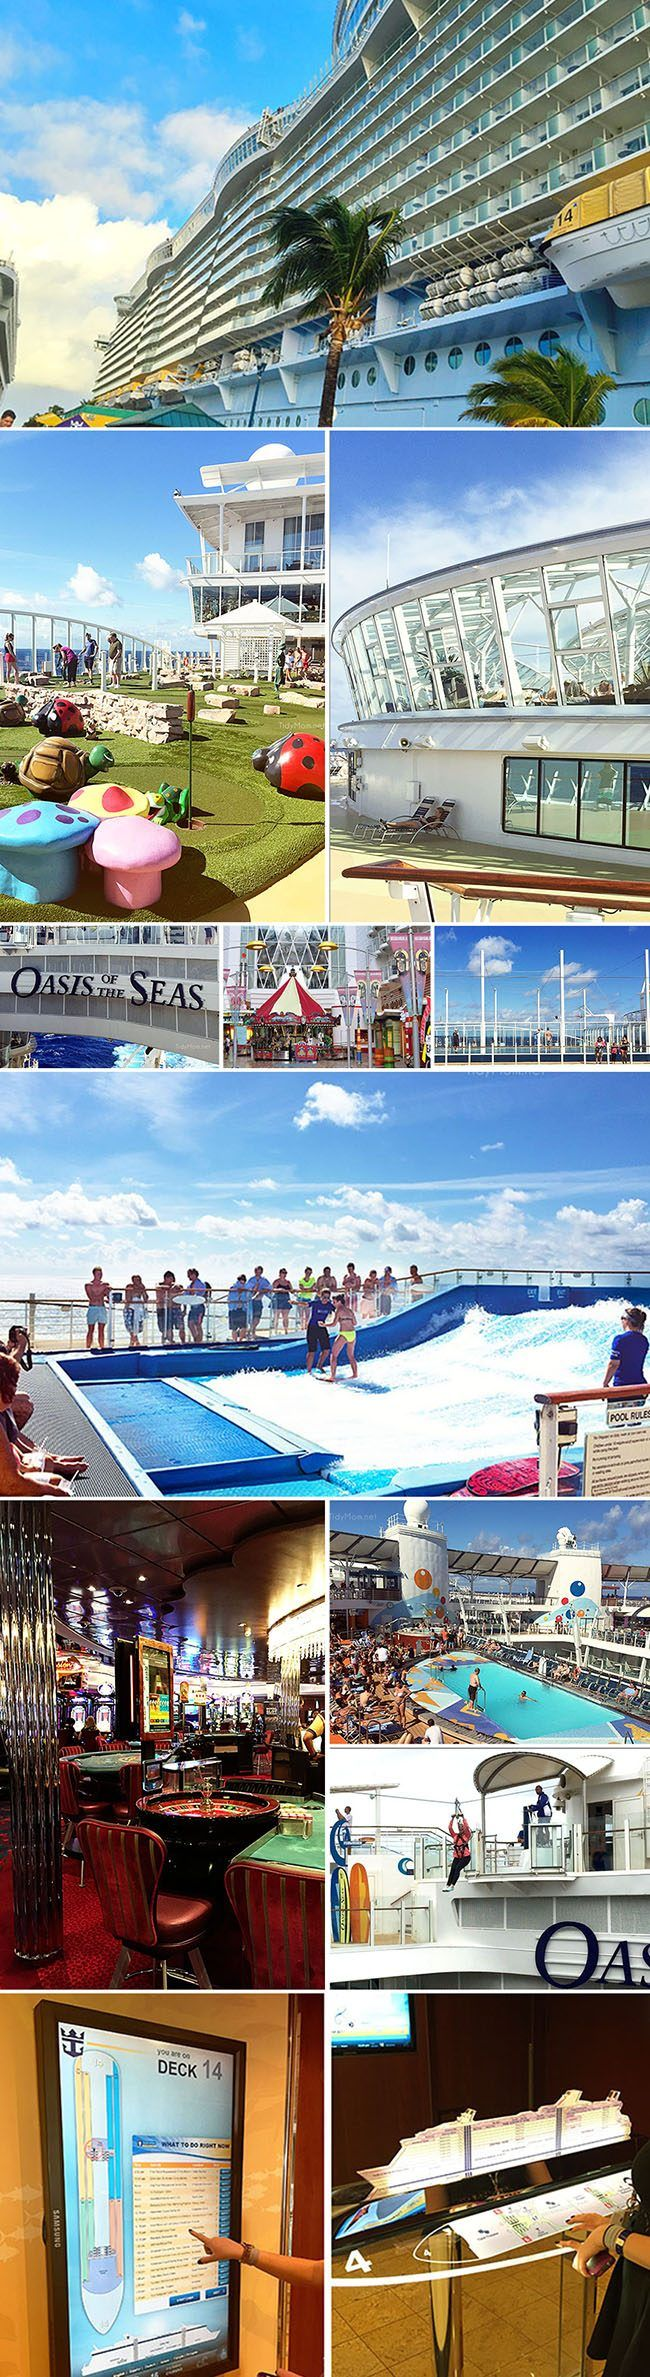 Royal Caribbean Oasis of the Seas cruise ship details and cruising tips at TidyMom.net